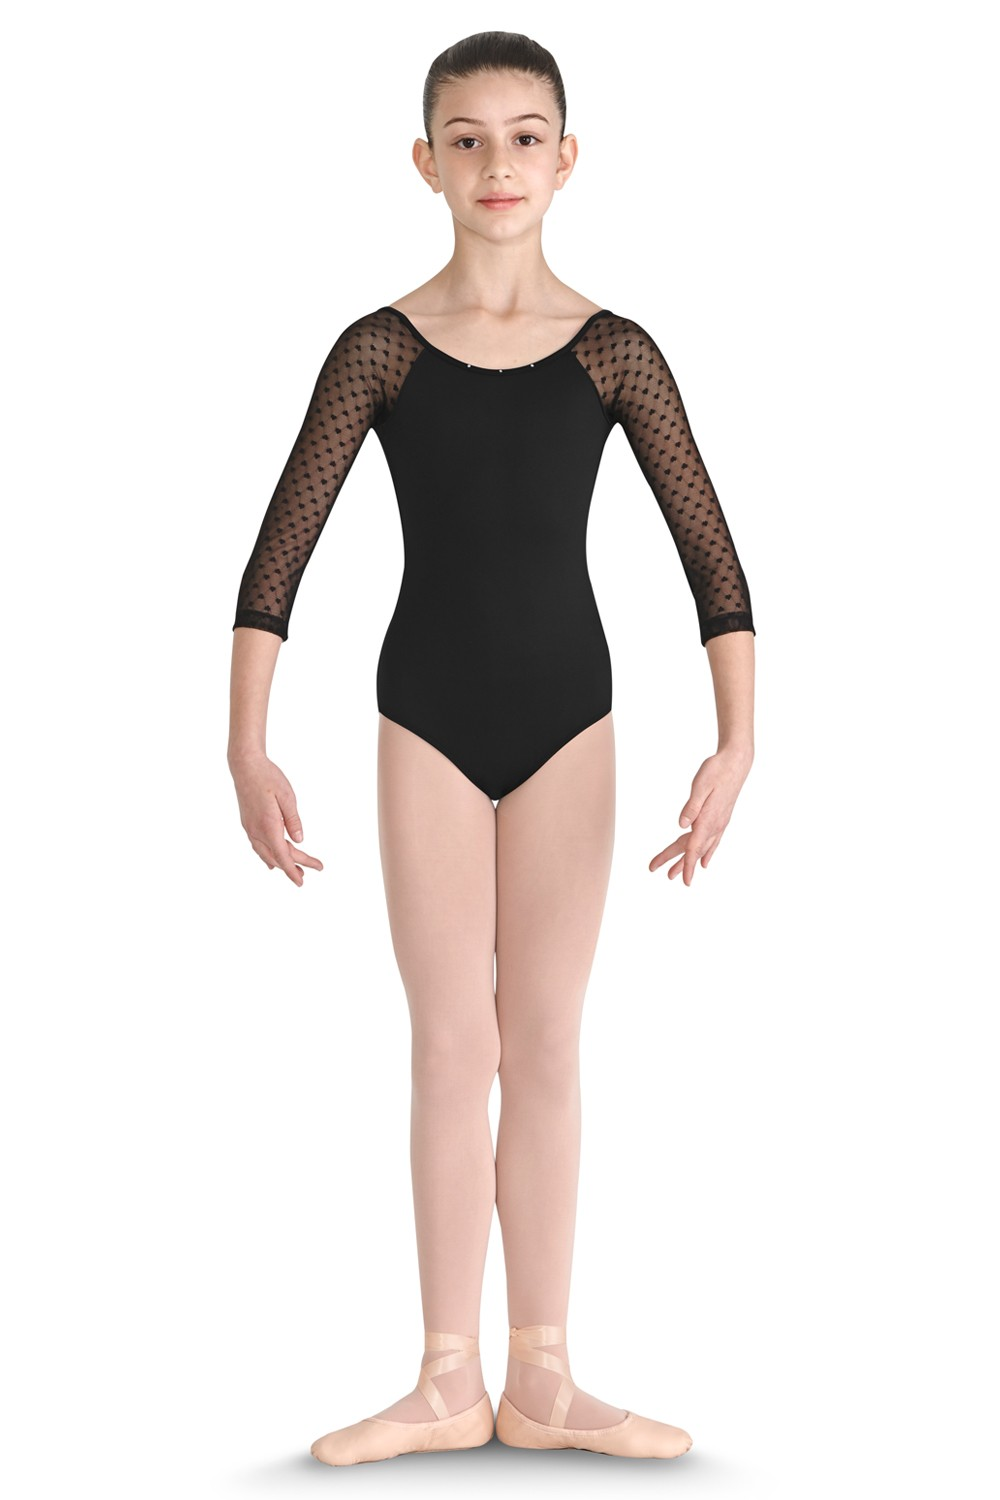 Tedua  Children's Dance Leotards